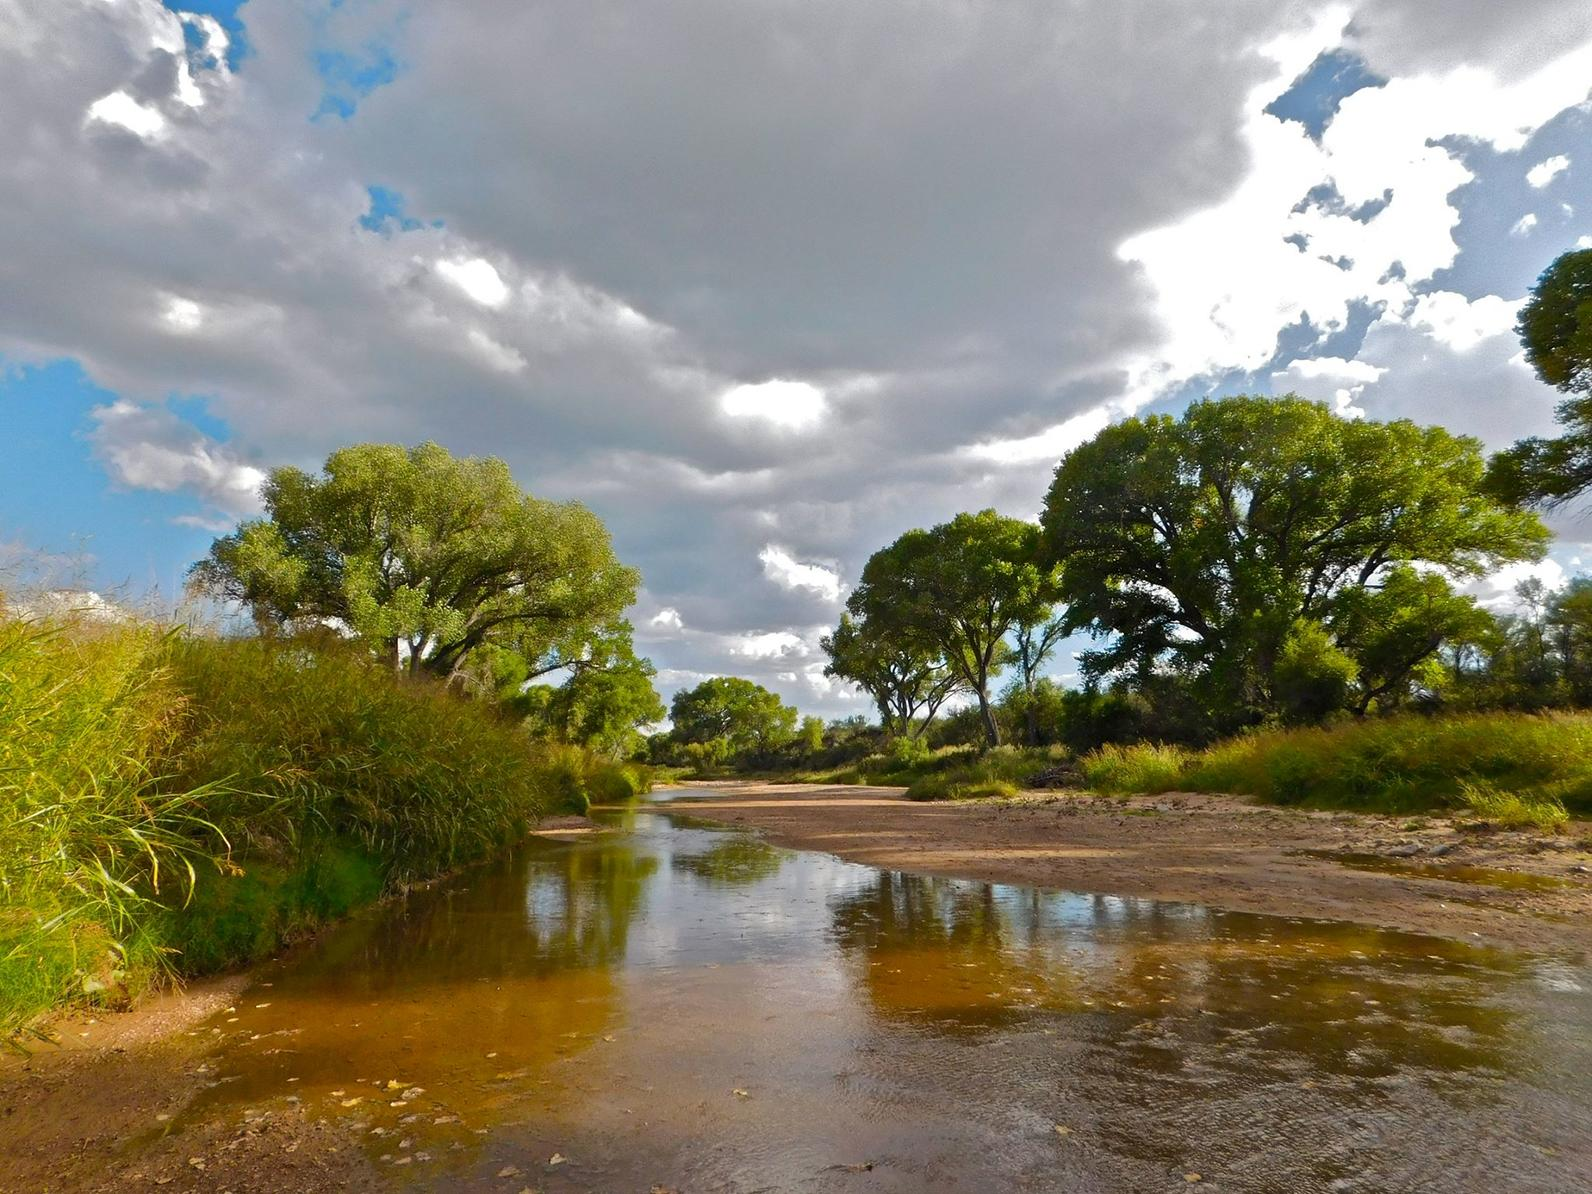 San Pedro River cottonwood/willow forest under cloudy skies.